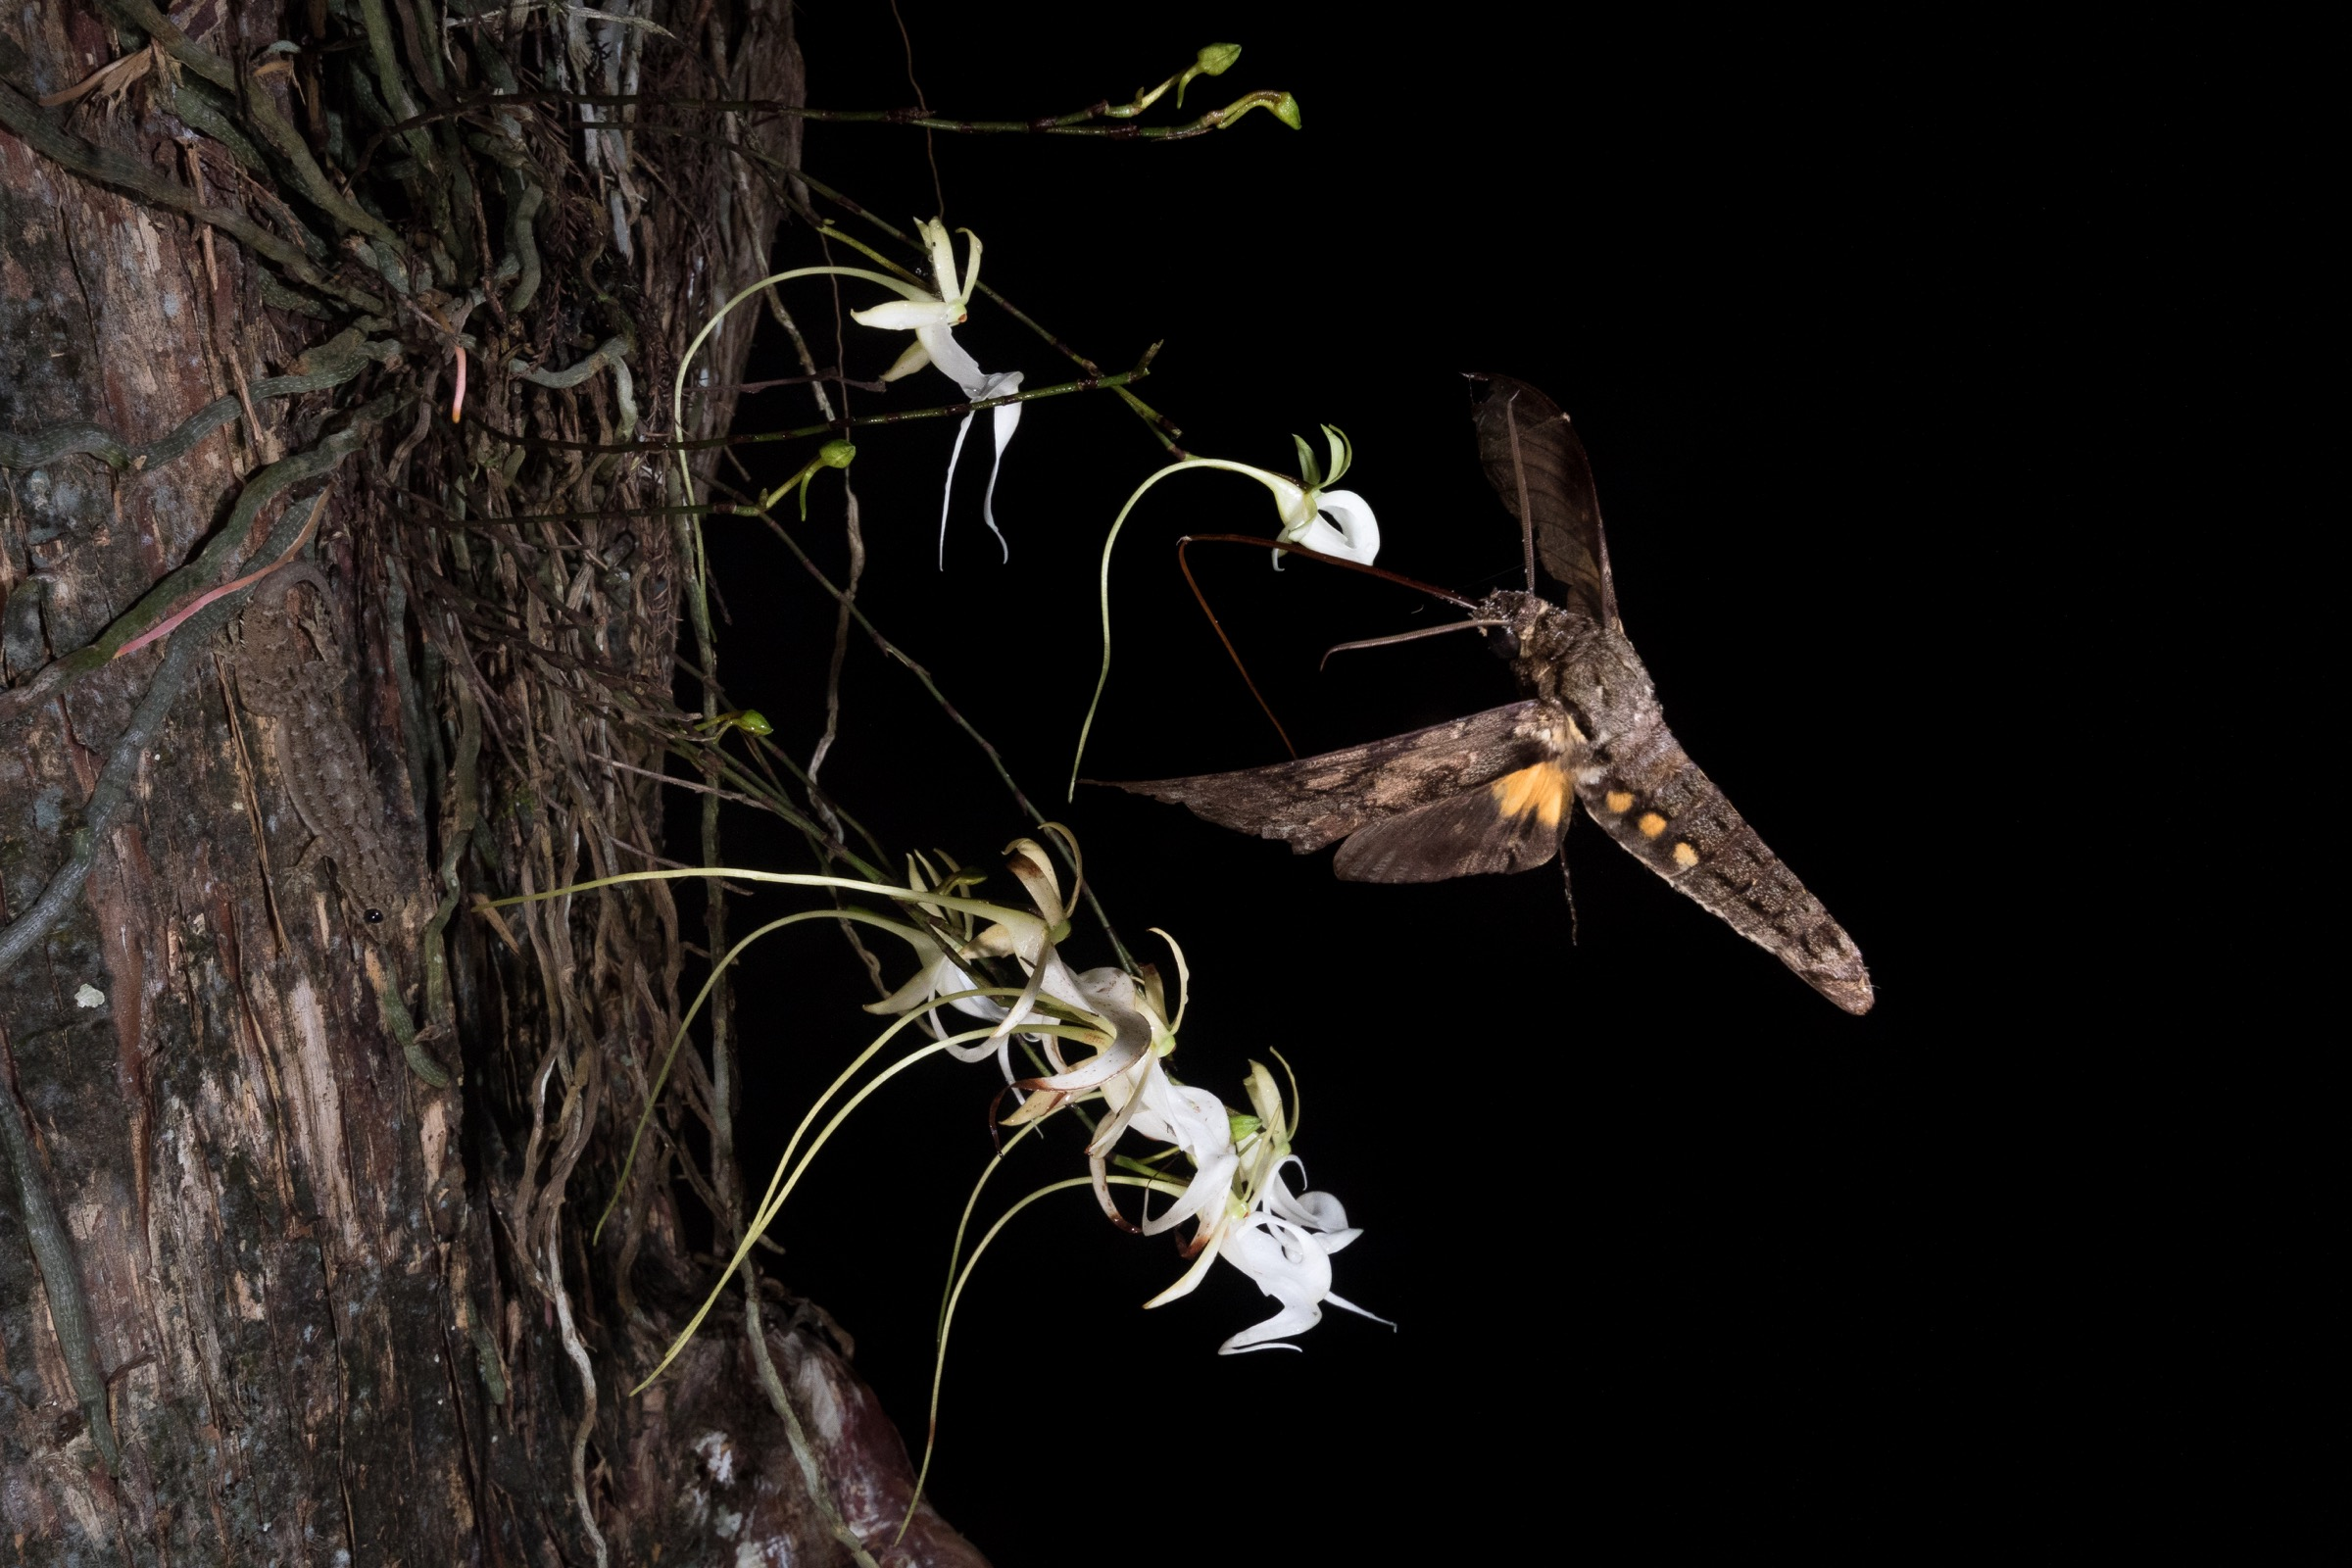 A giant sphinx moth extends its proboscis to drink the nectar from a ghost orchid. Photograph by Mac Stone